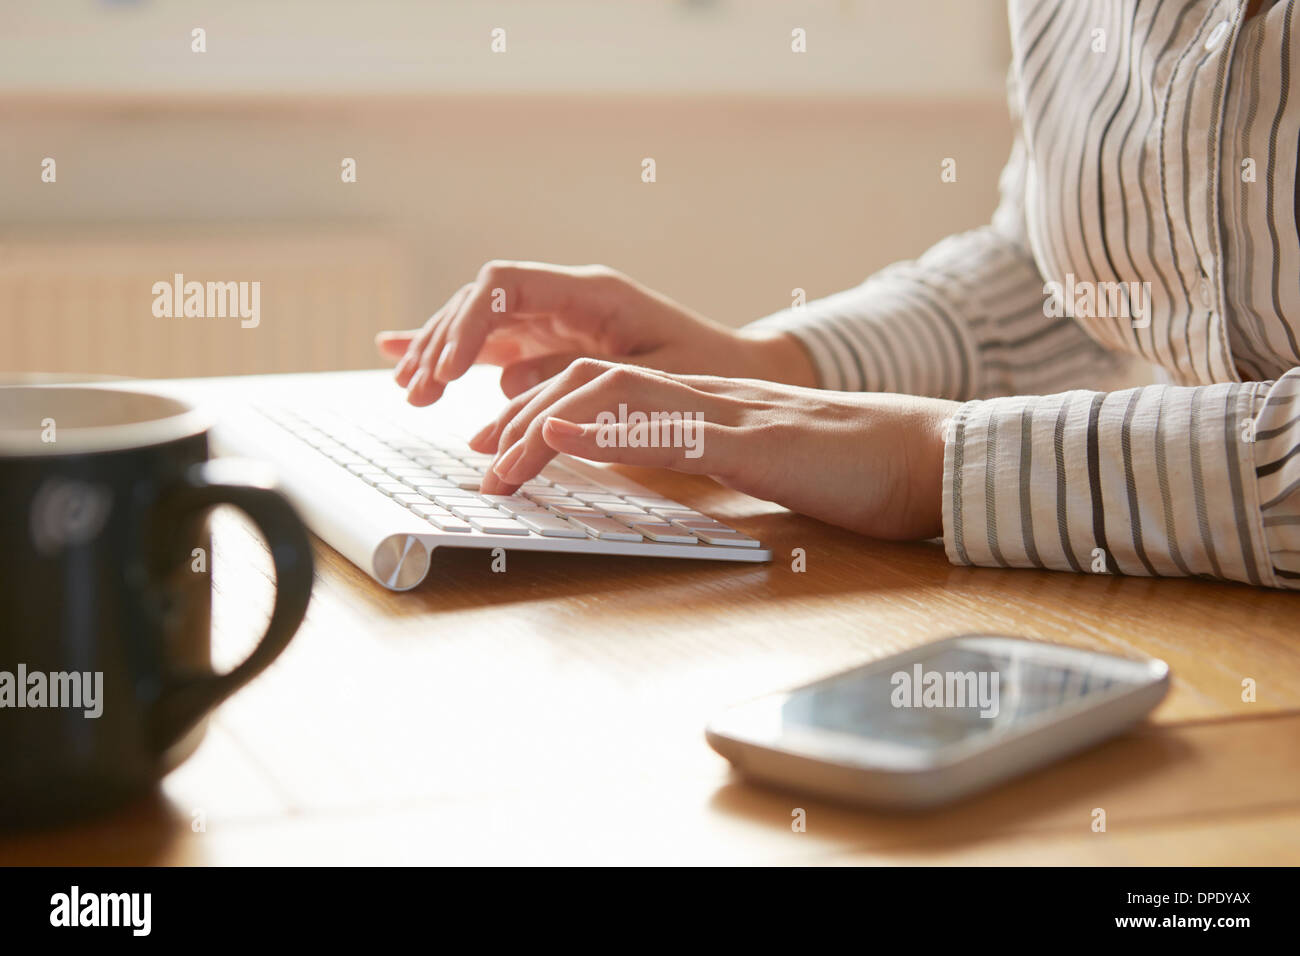 Cropped image of woman typing on wireless keyboard - Stock Image